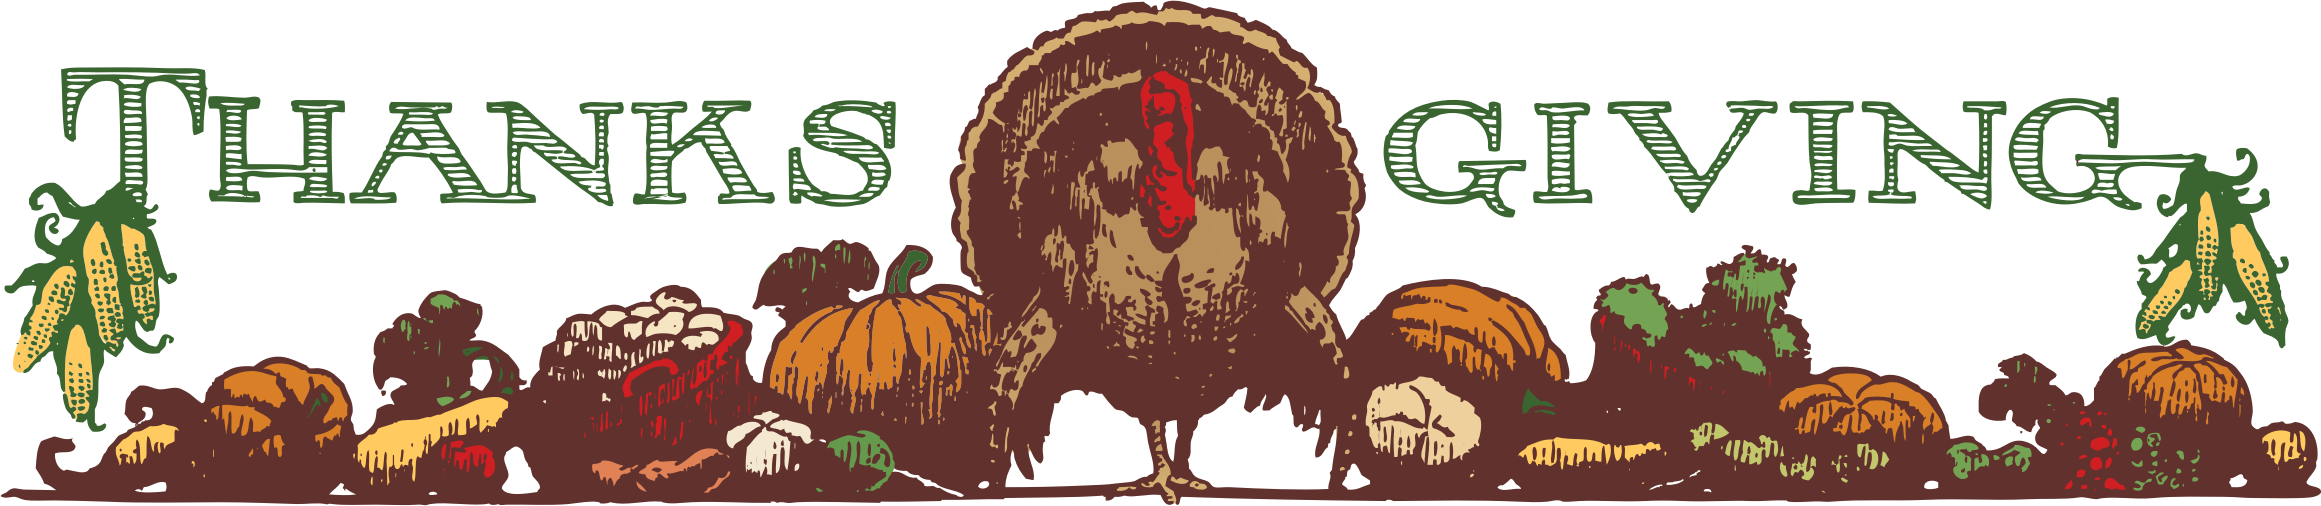 Thanksgiving clipart color image free download Thanksgiving clipart food header image free download